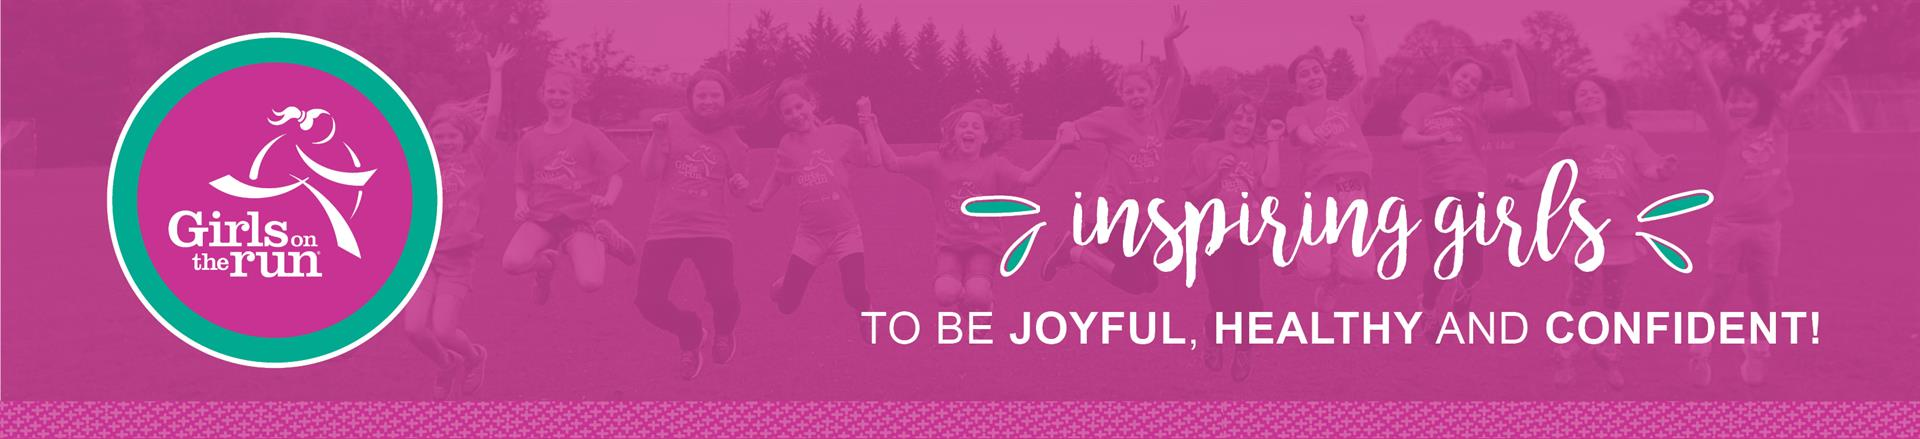 Michael, Girls on the Run Registration Opens August 17